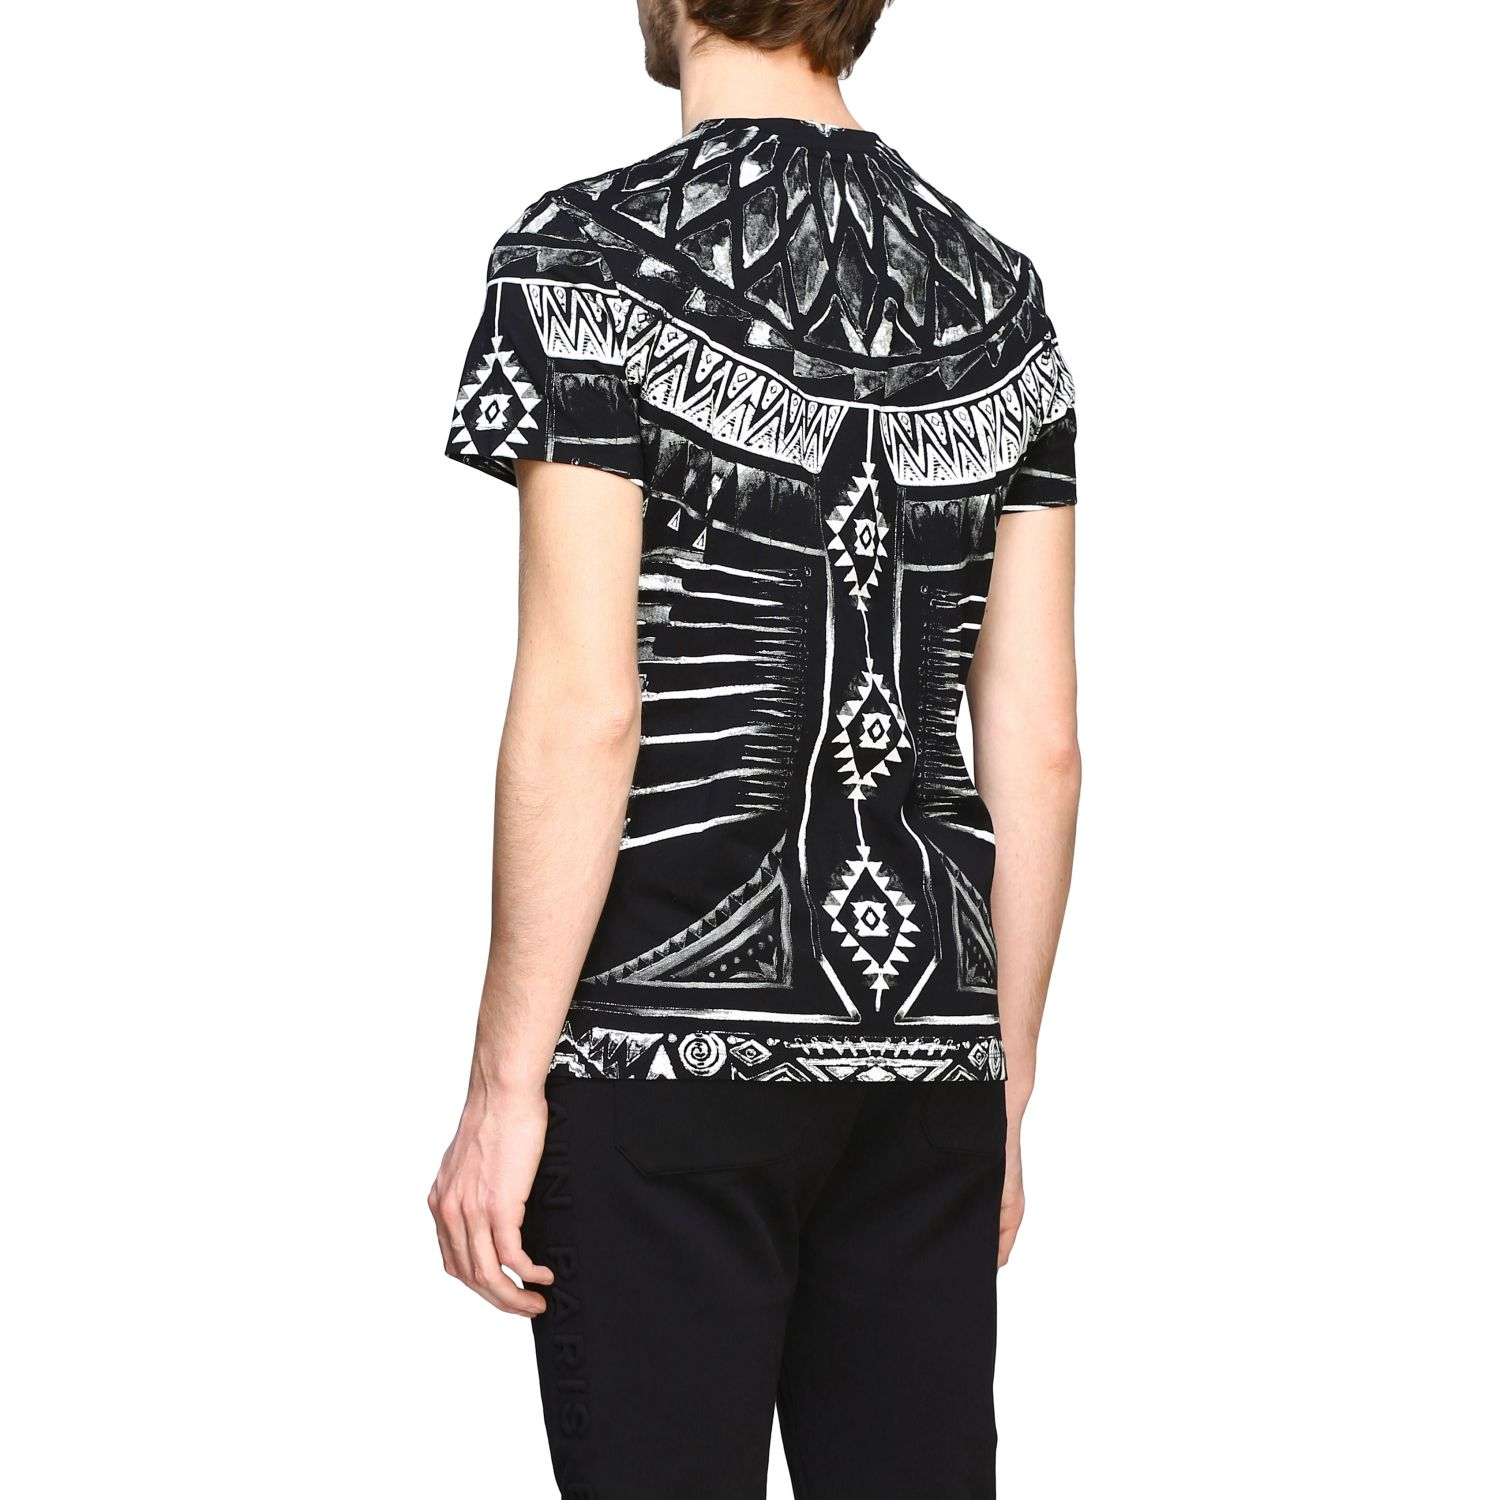 T-shirt Balmain: Balmain printed t-shirt with short sleeves black 3